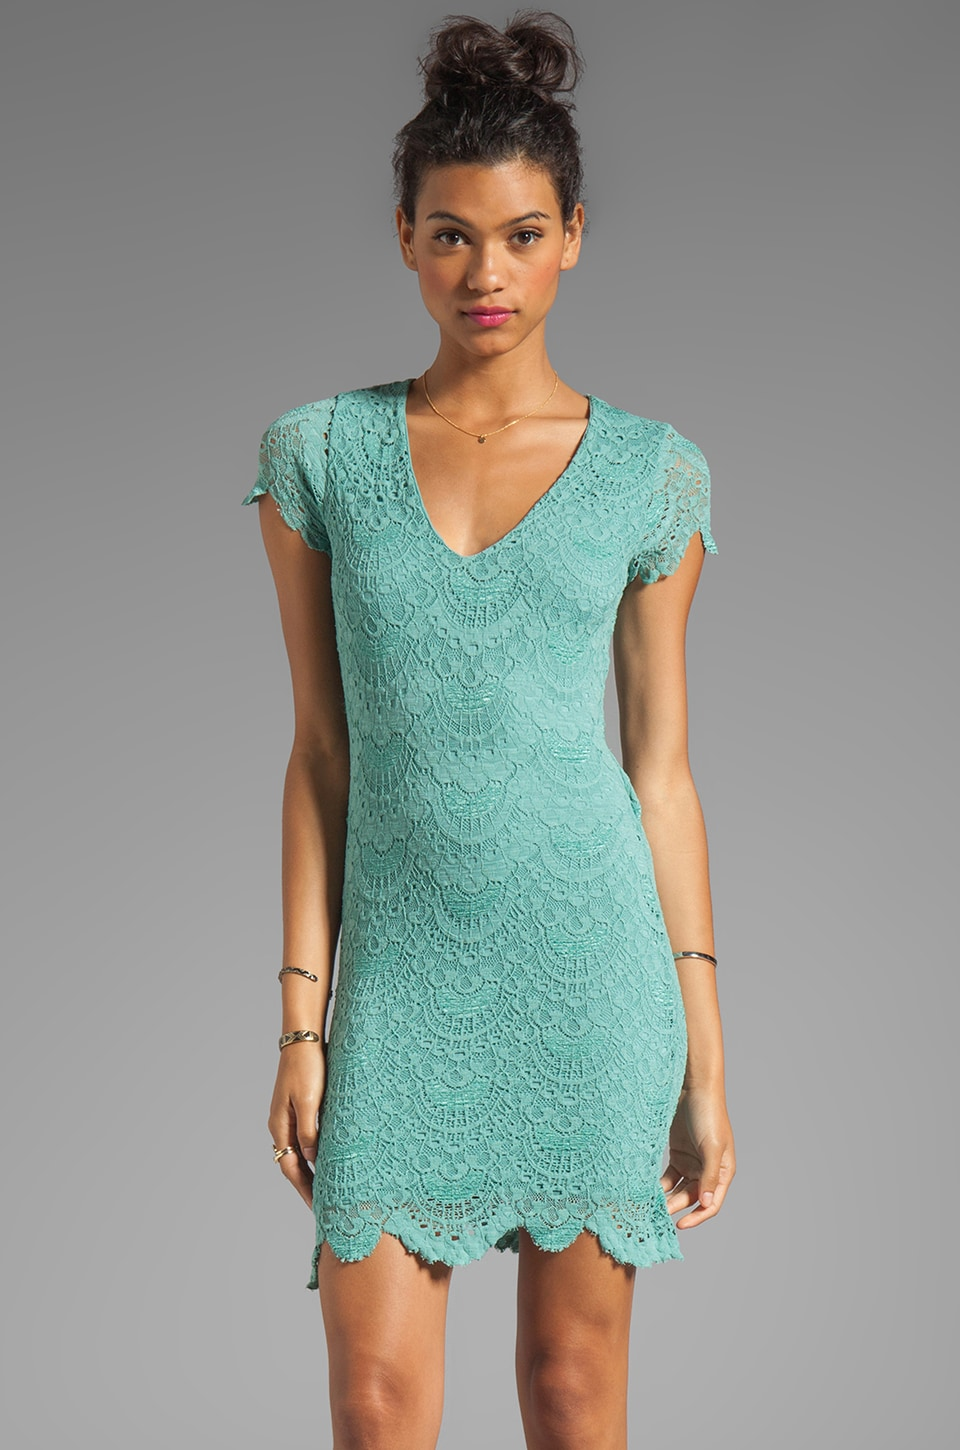 Nightcap Spanish Lace Dress in Seafoam